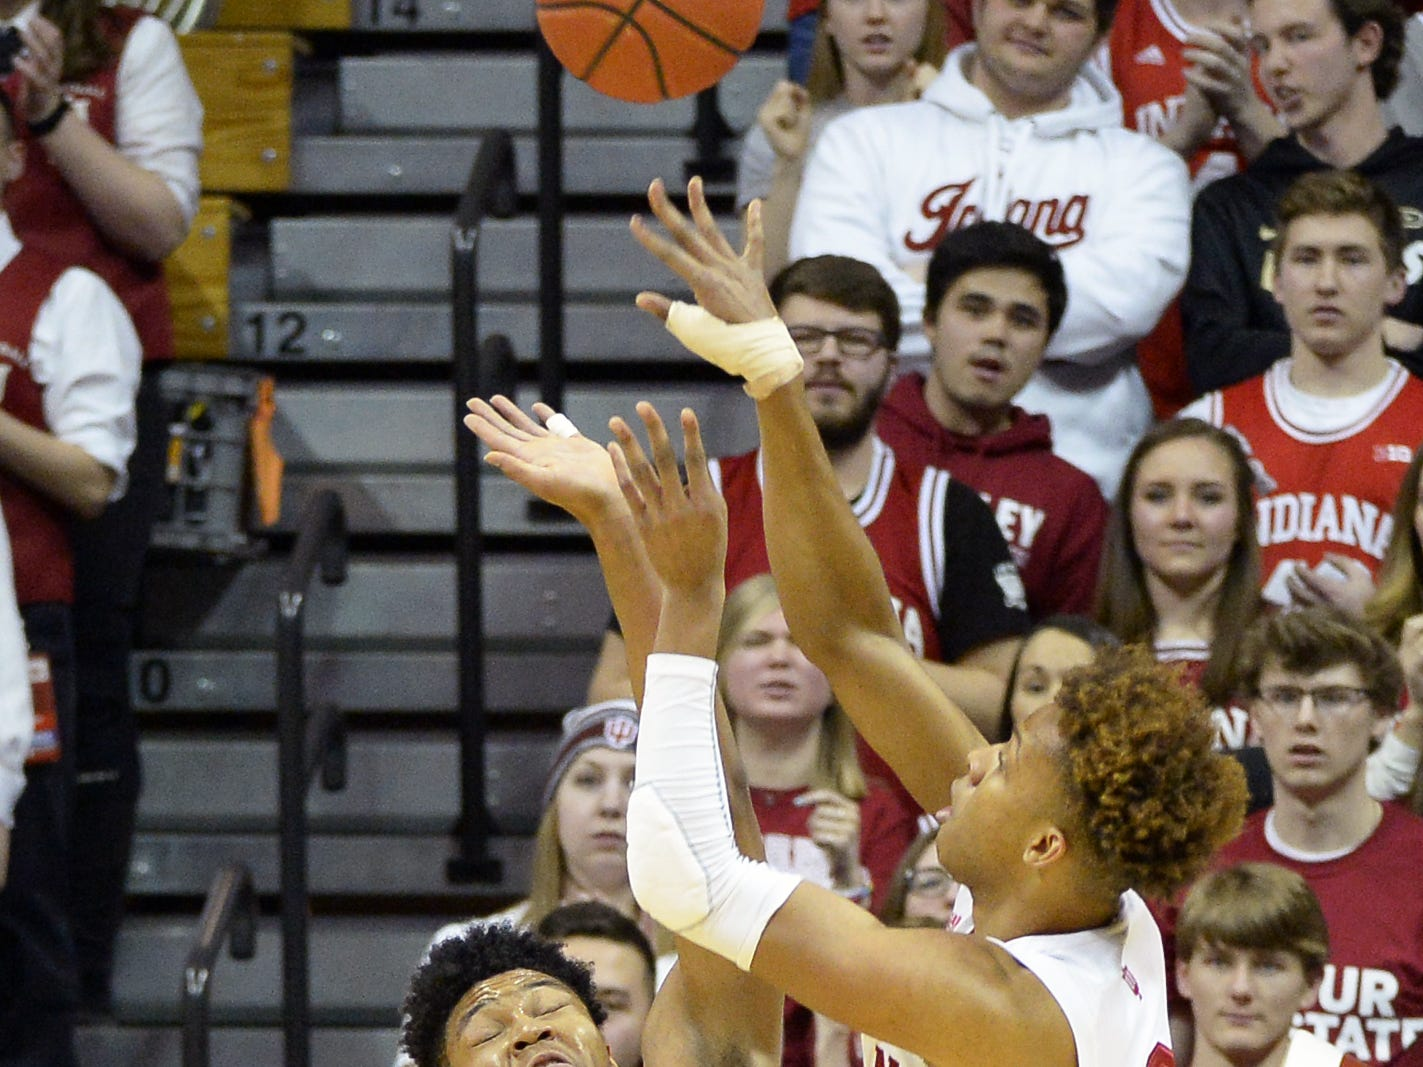 Indiana Hoosiers guard Romeo Langford (0) shoots the ball during the game against Purdue at Simon Skjodt Assembly Hall in Bloomington, Ind., on Tuesday, Feb. 19, 2019.